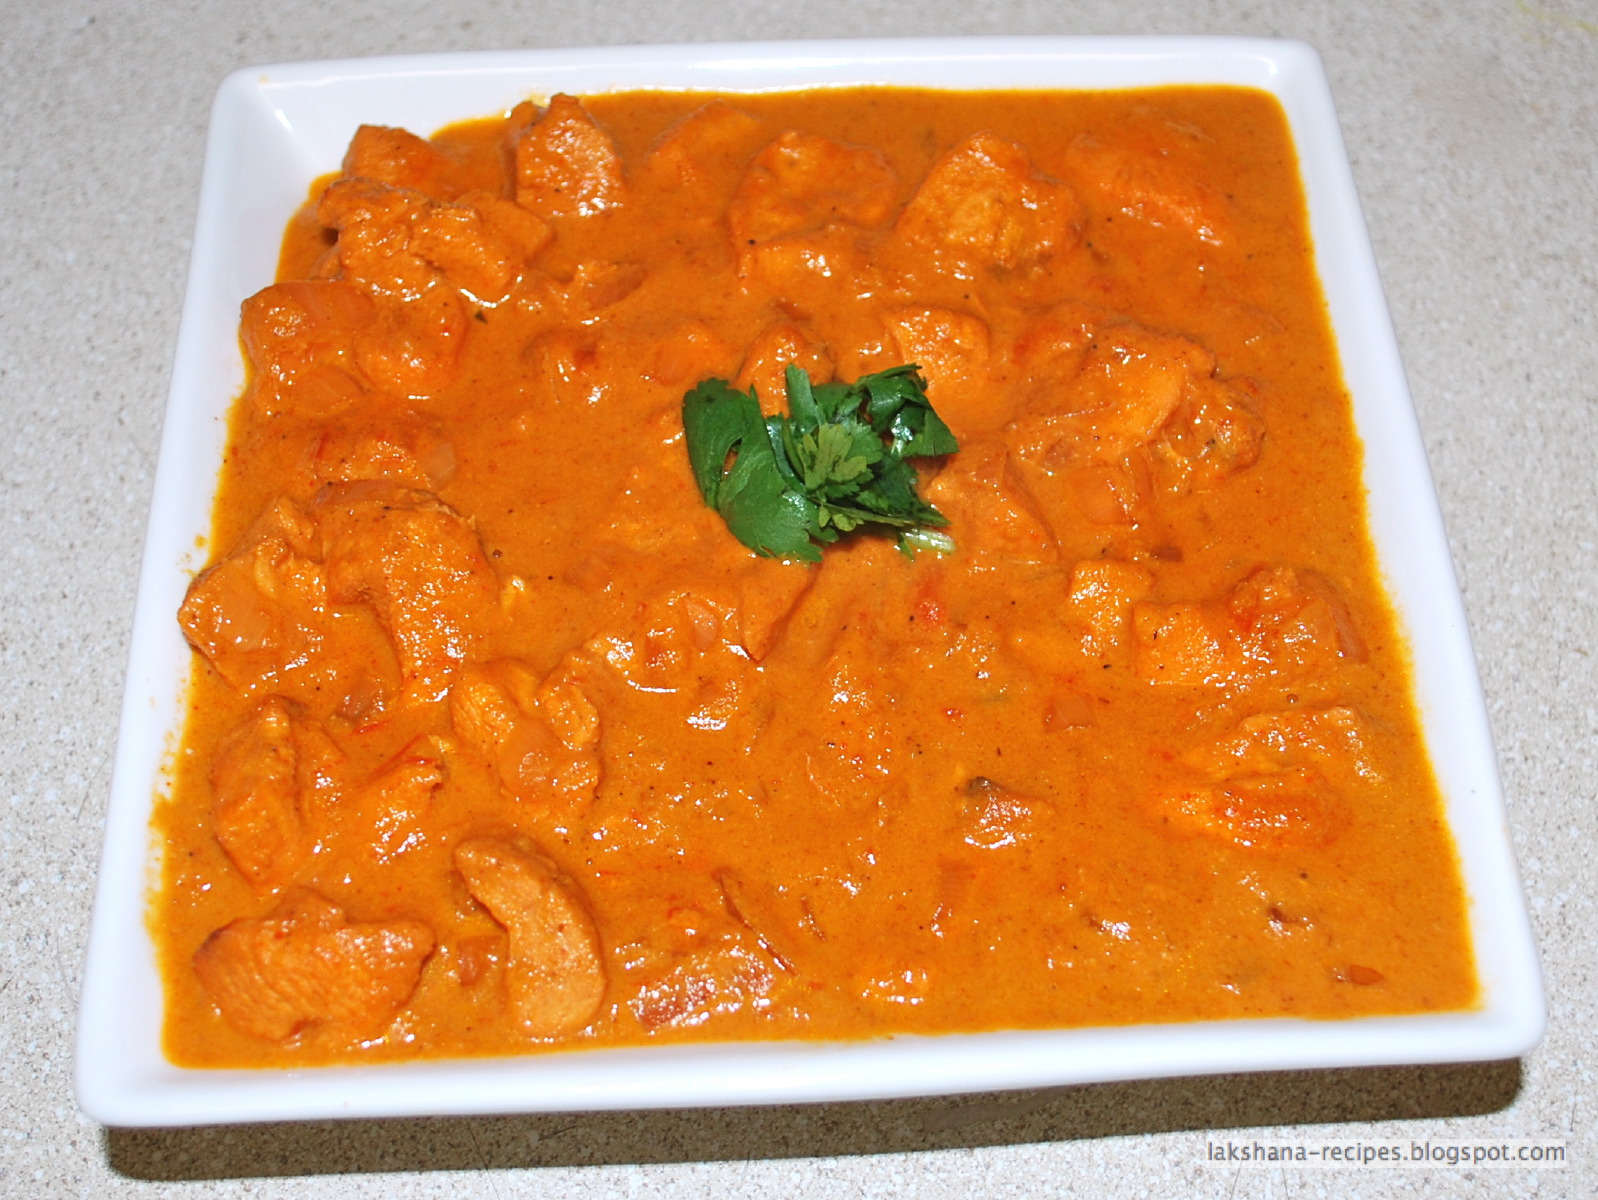 lakshana-recipes: Chicken Tikka Masala